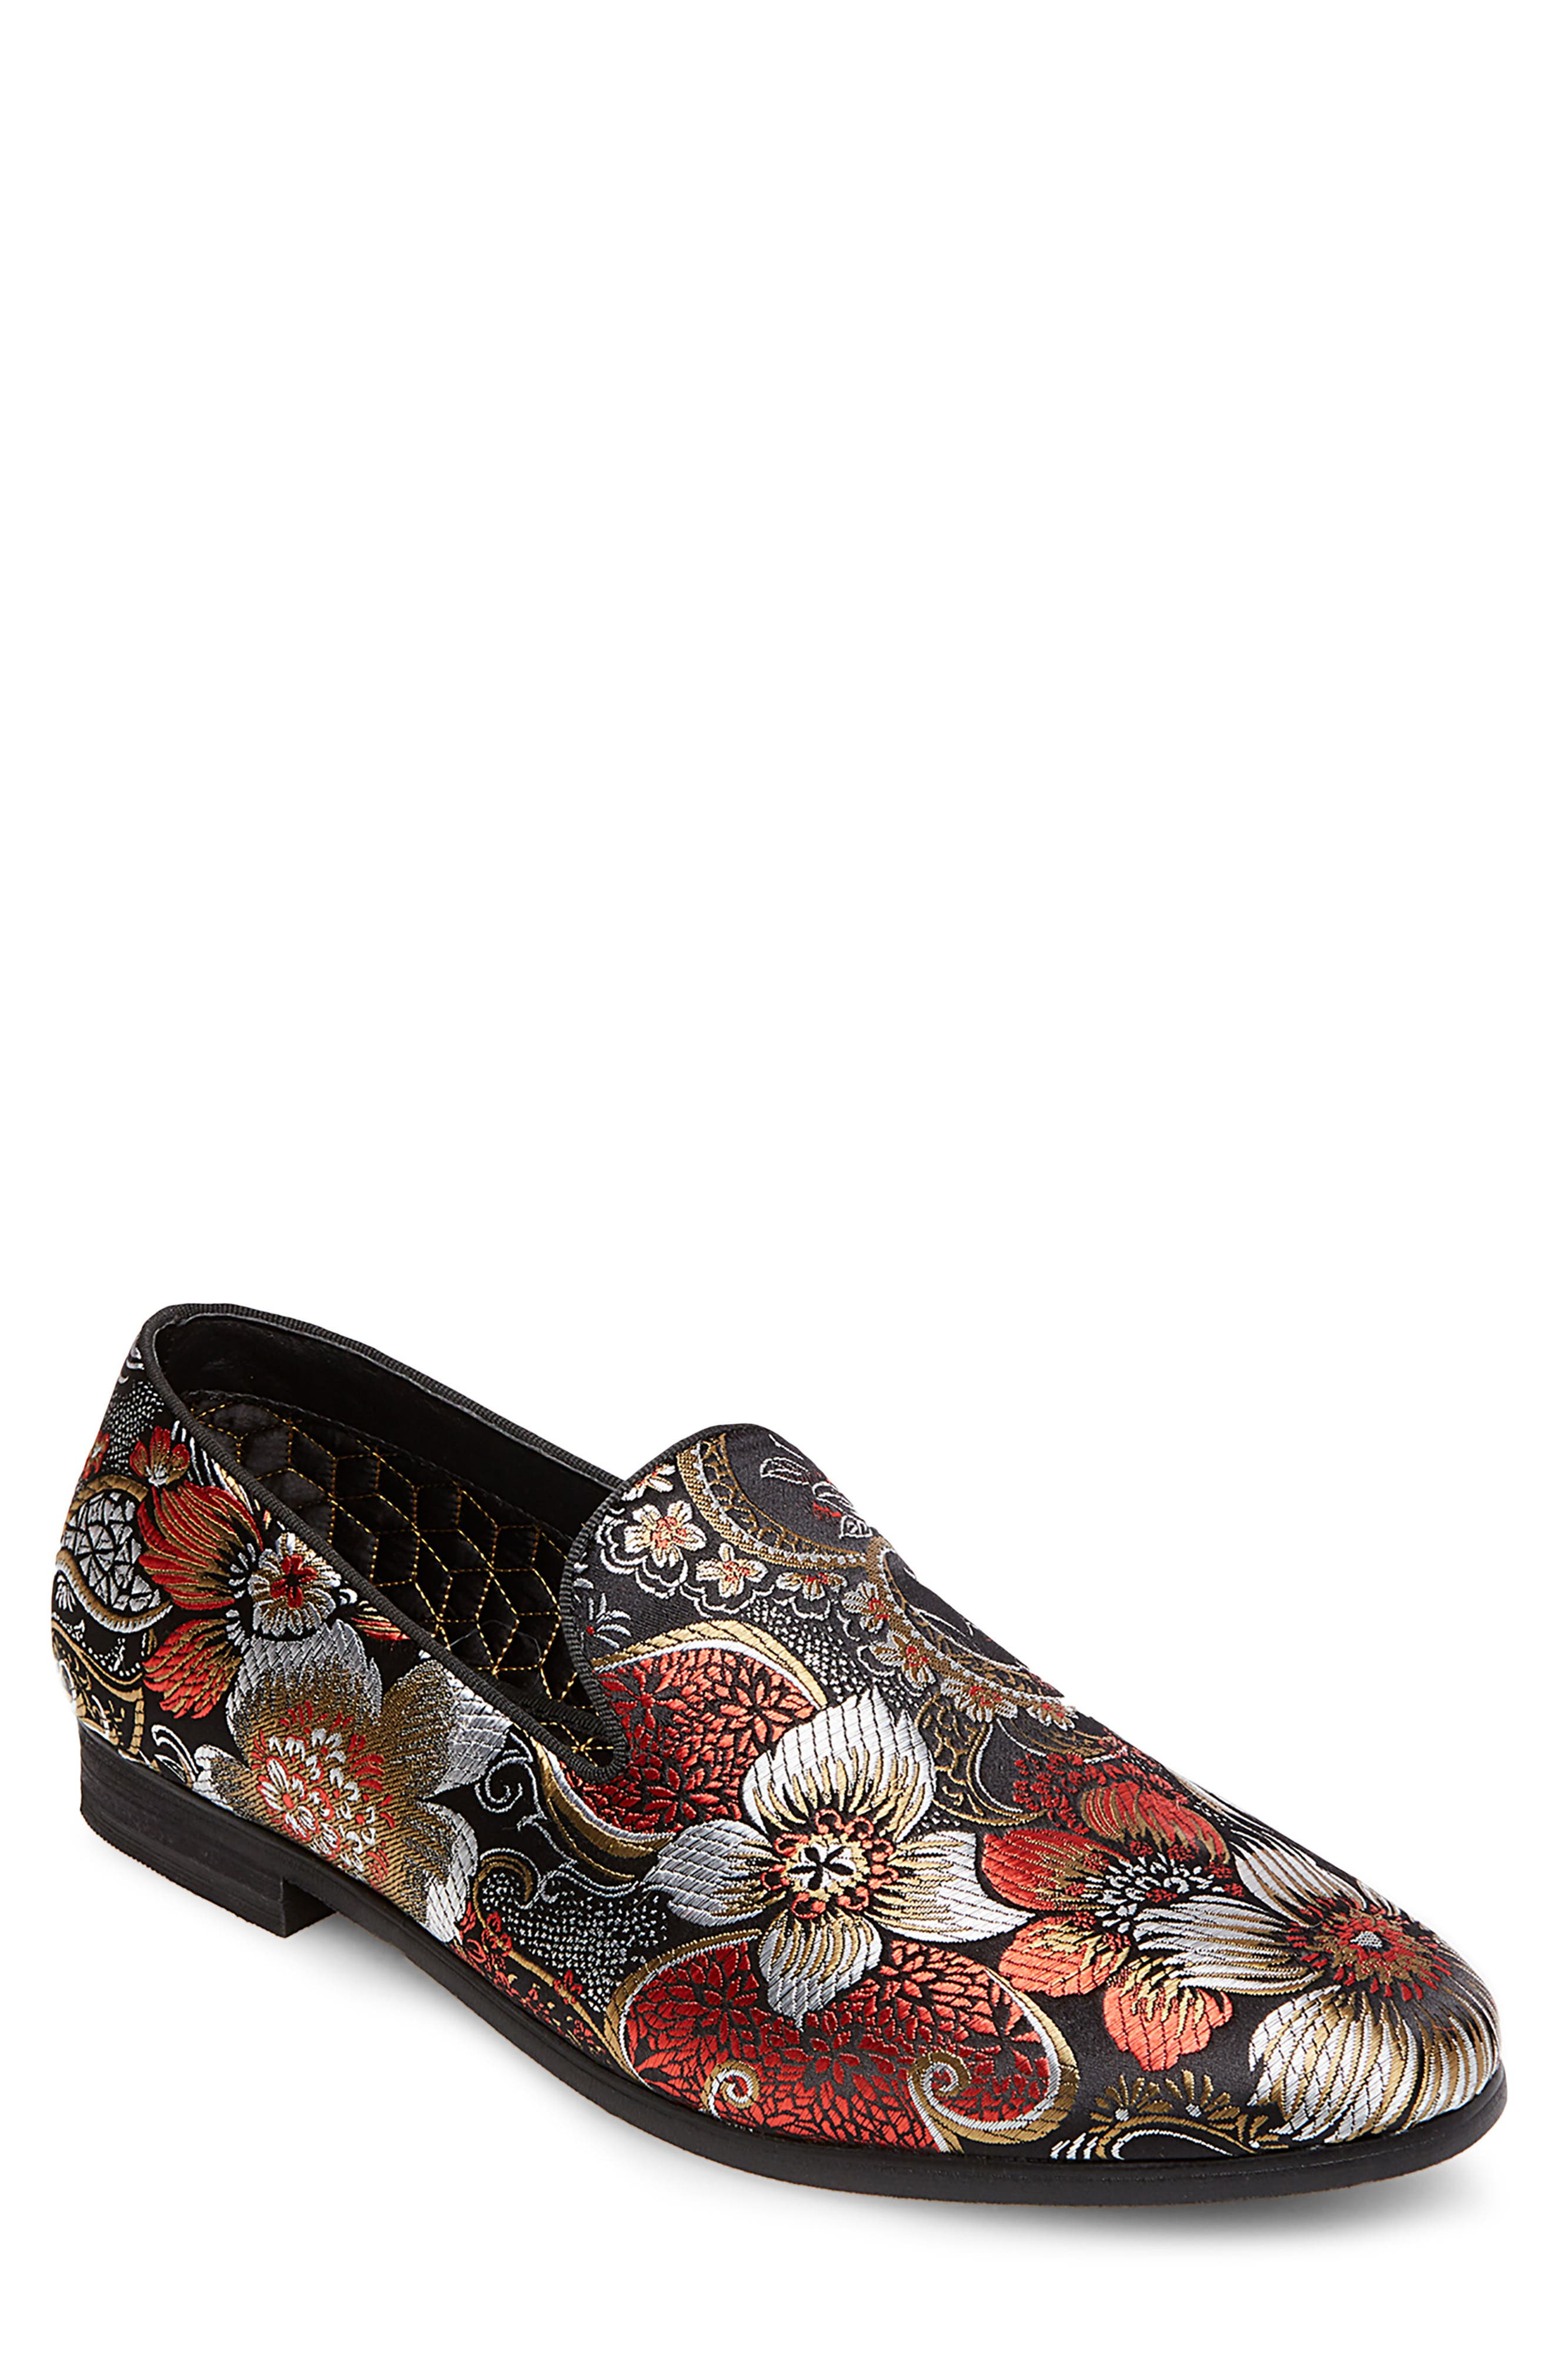 Cypress Venetian Loafer,                         Main,                         color, 634